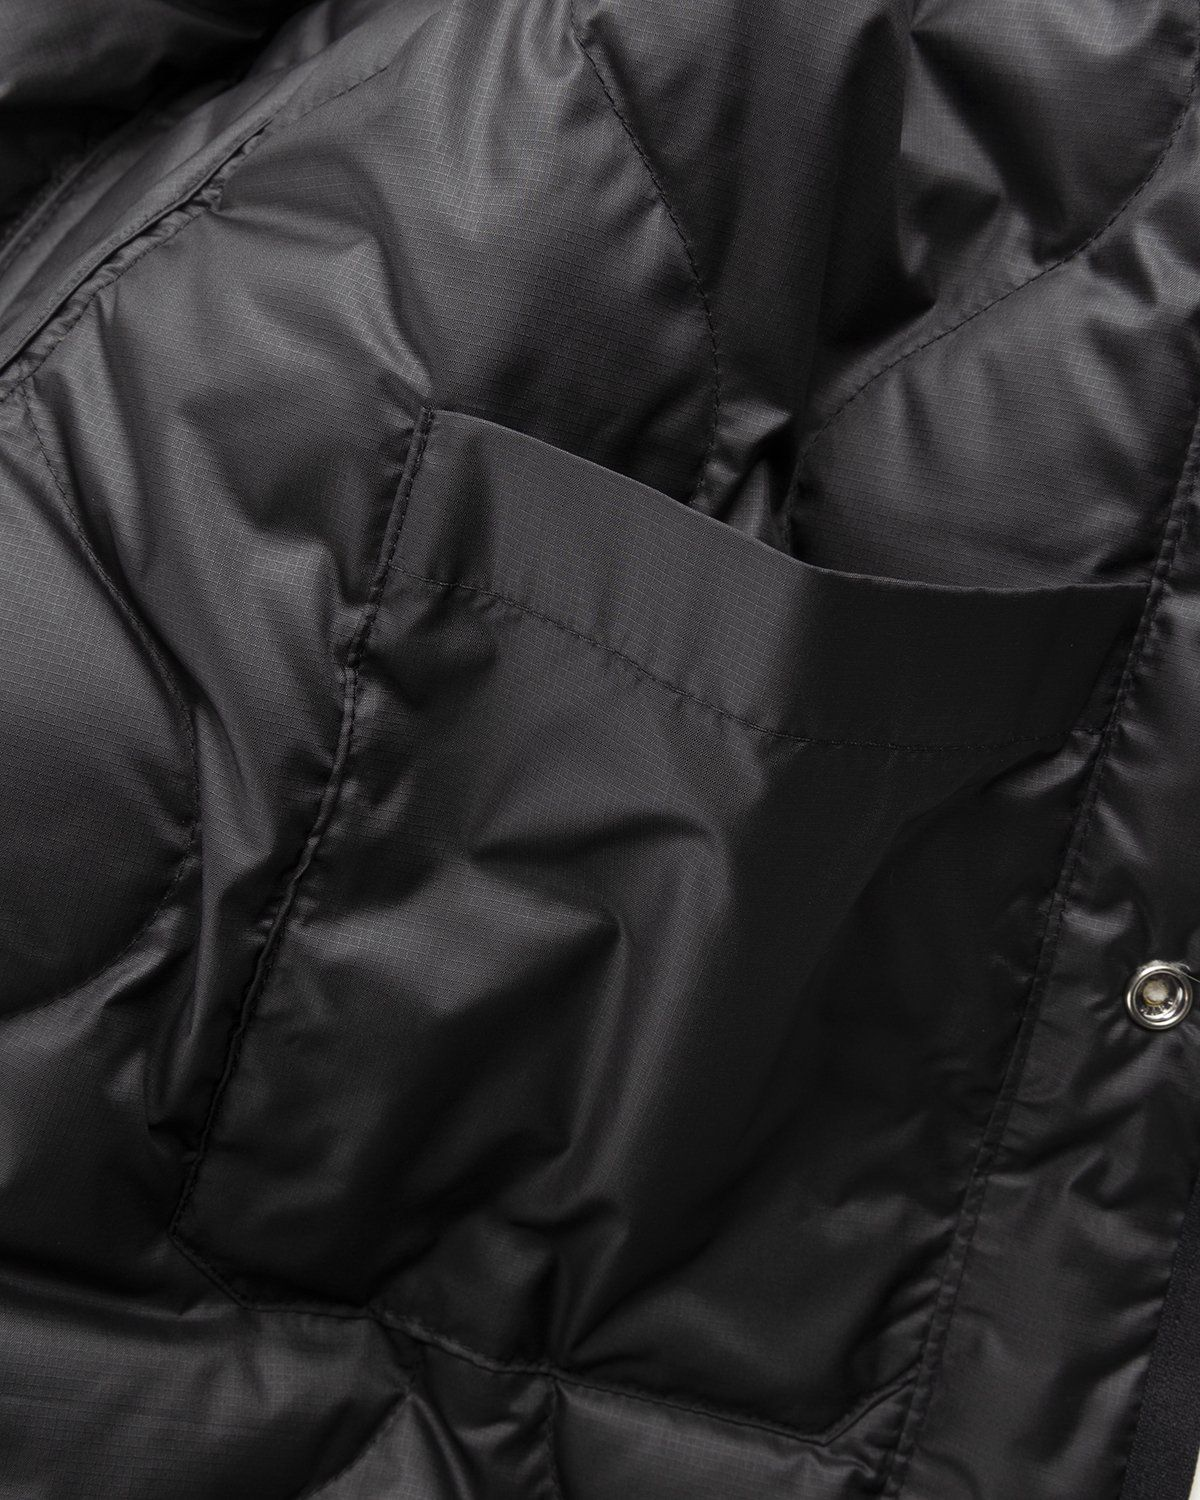 The North Face – M66 Down Jacket Black - Image 6